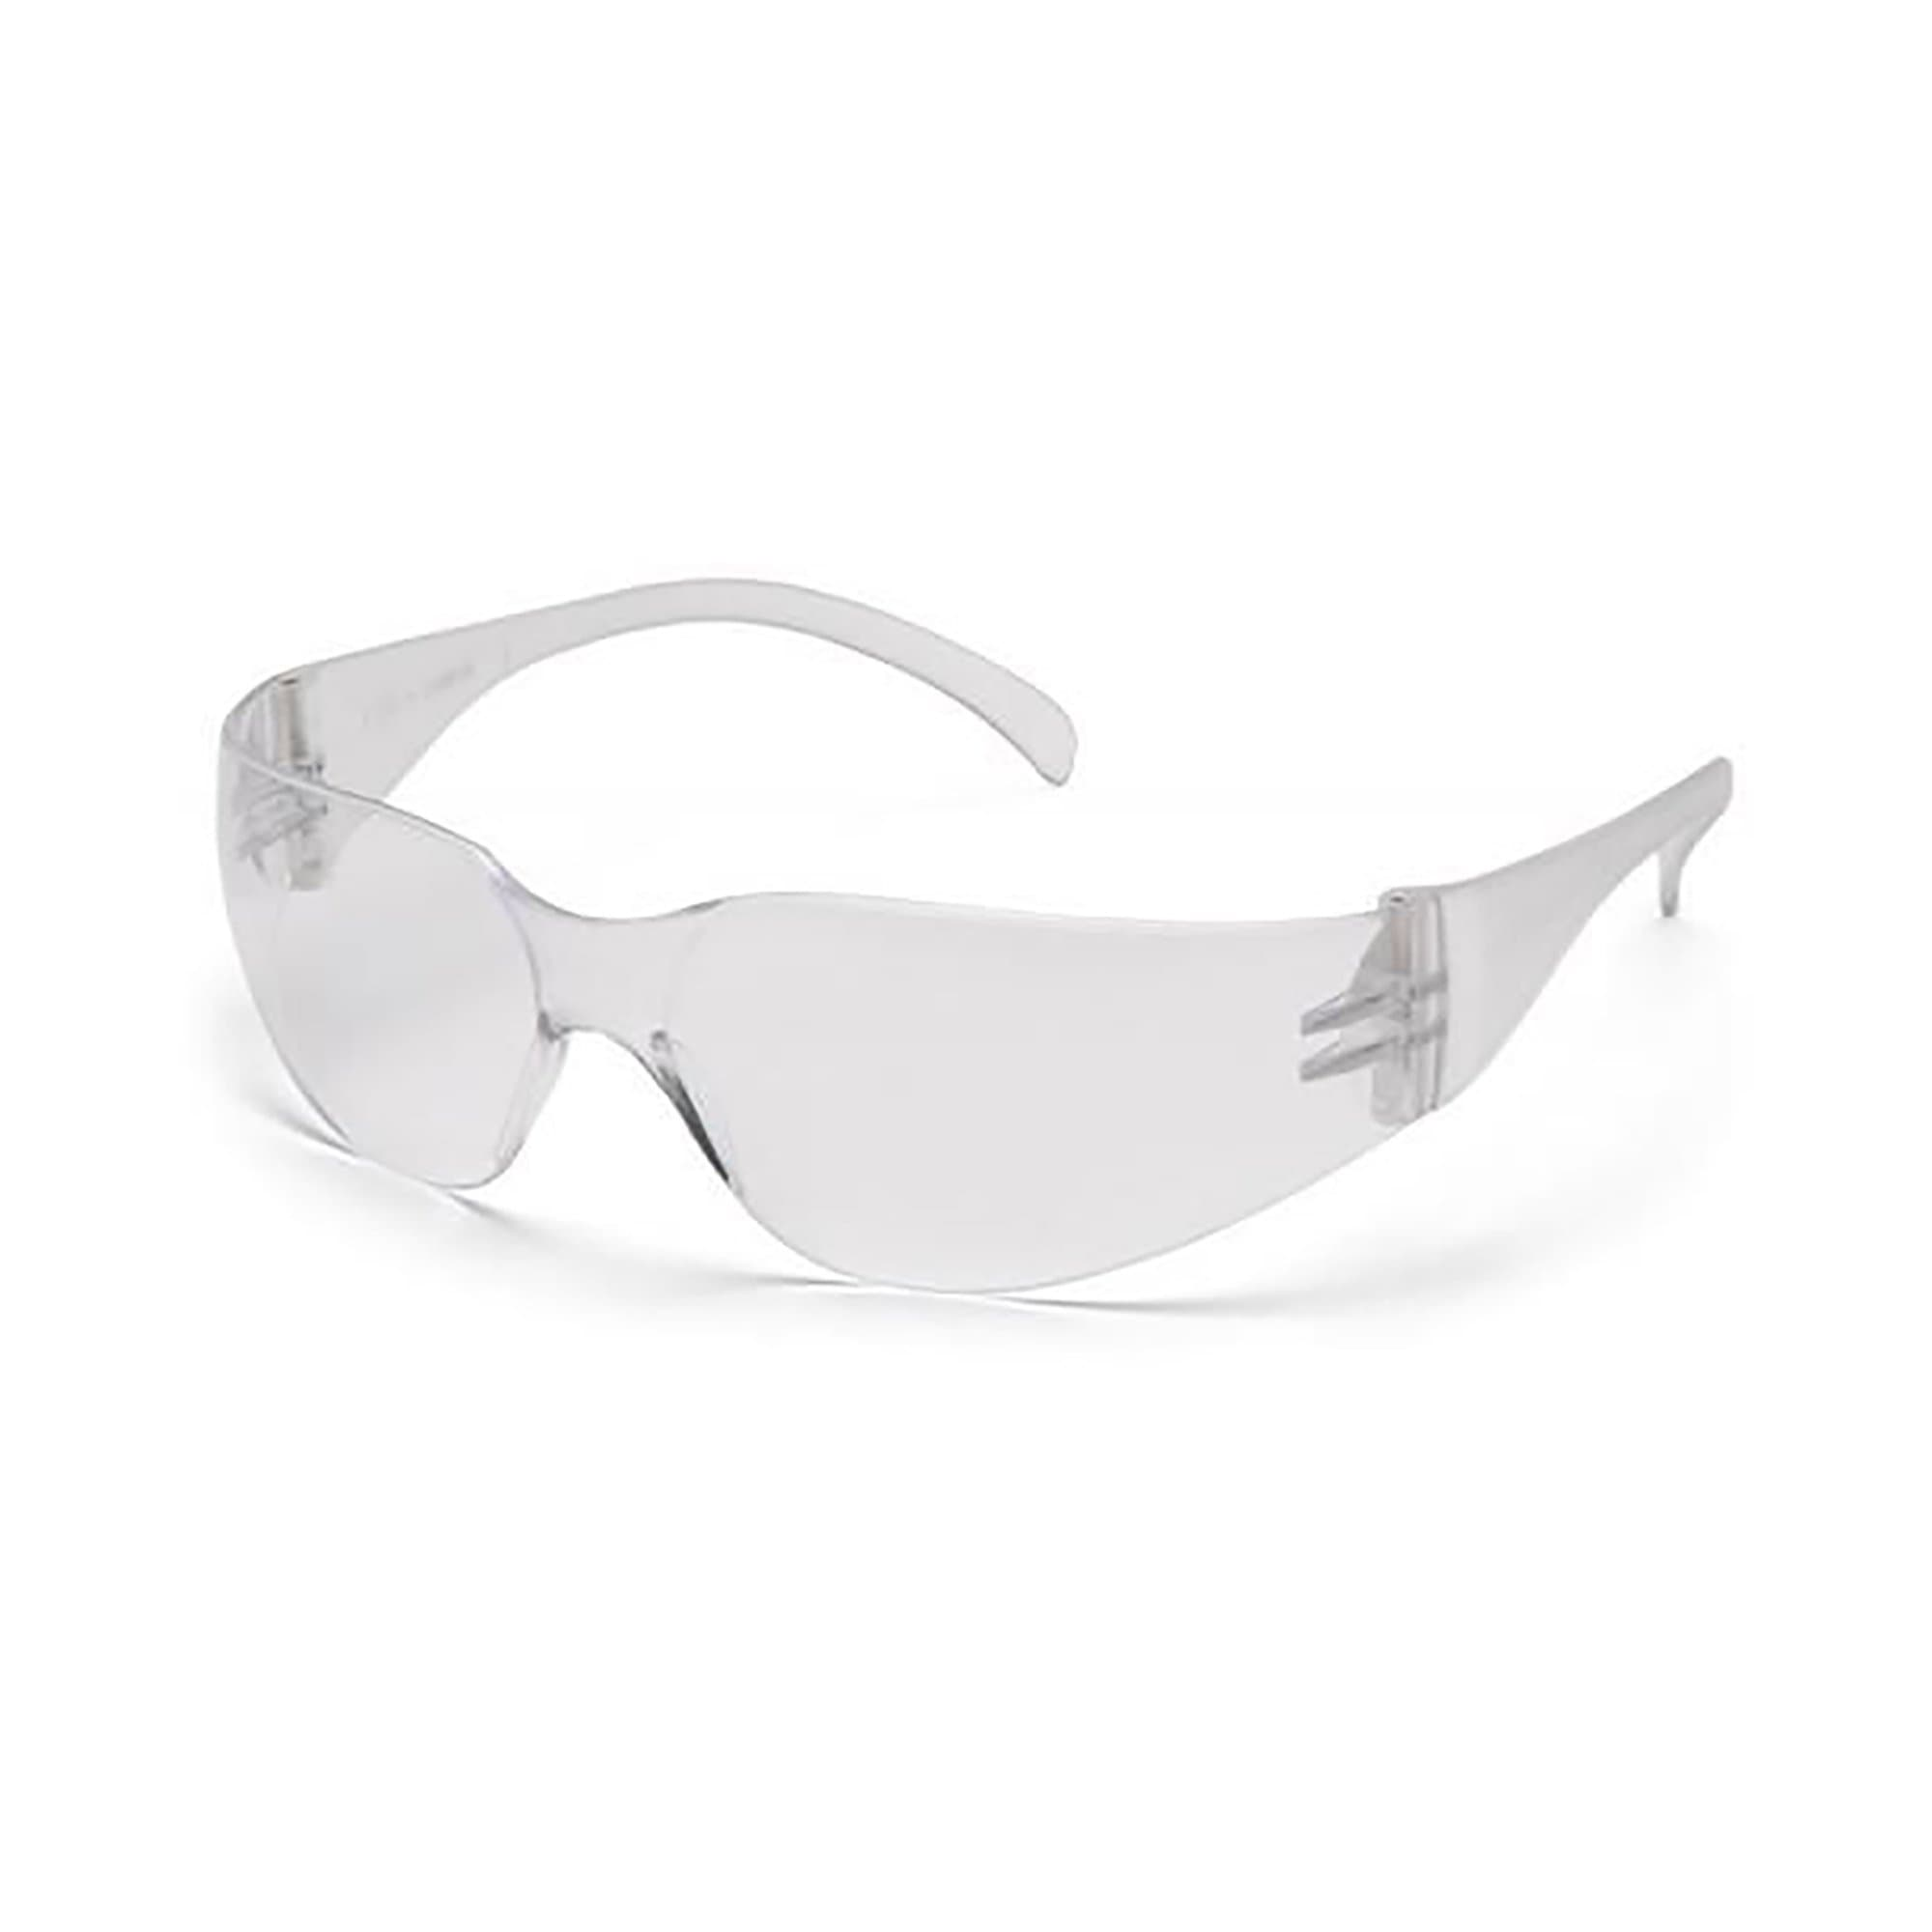 Safety Glasses Clear Scratch Resistant Lens: CSA Z94.3 and ANSI Z87.1 Compliant